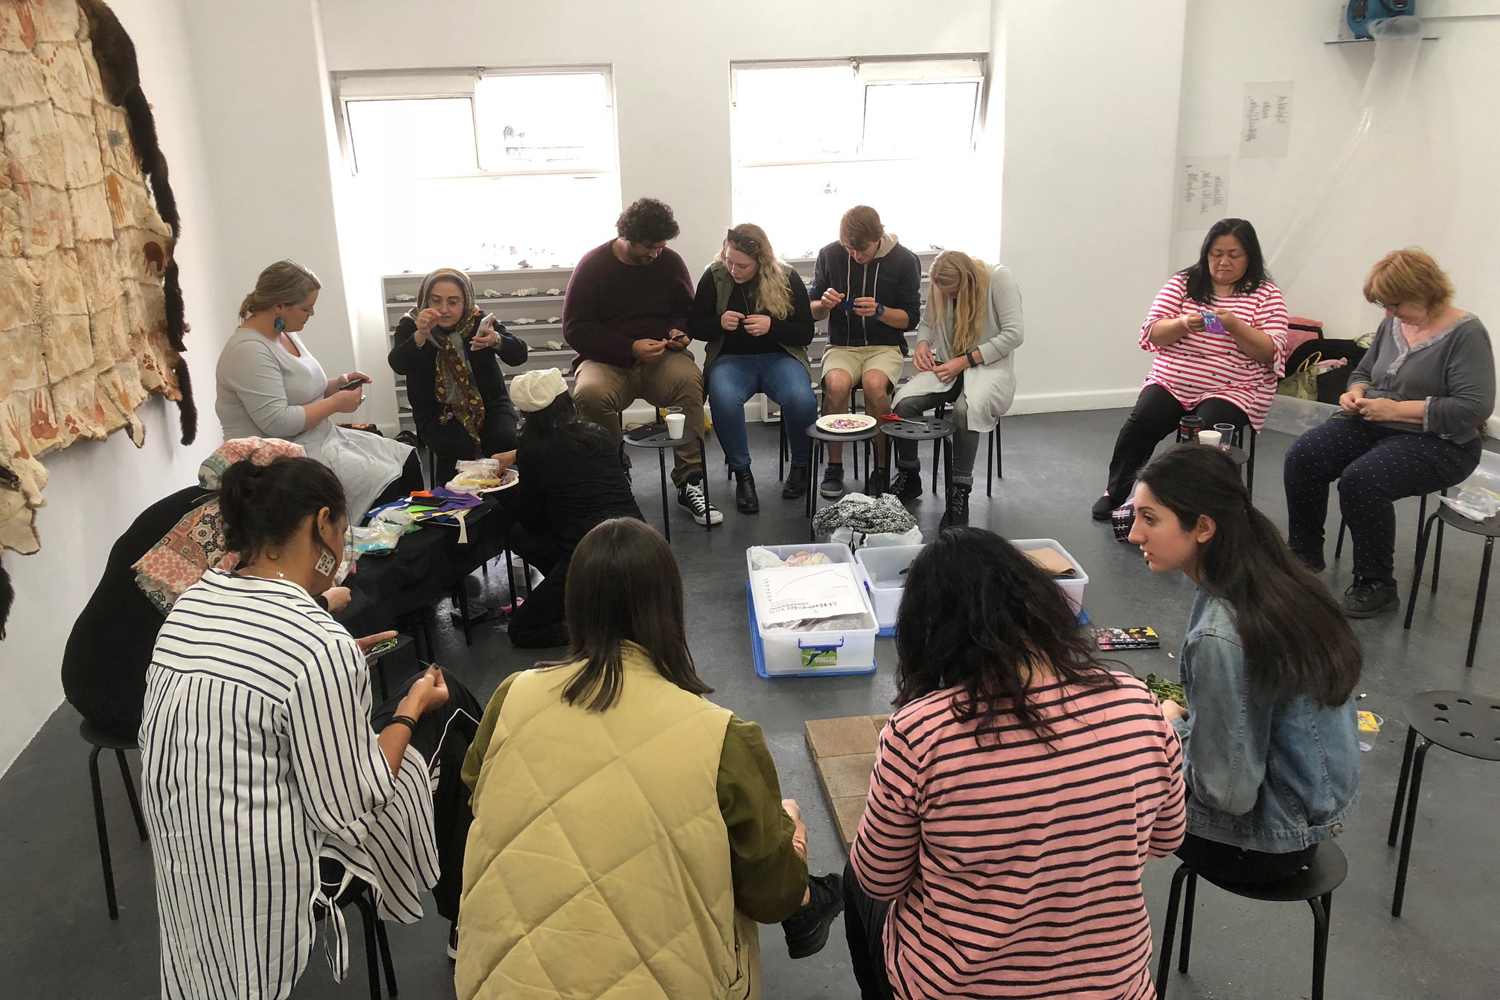 Participatory Workshop by Liam Benson with Adorned. All of Us, BLINDSIDE 2018. Photo Liam Benson | Courtesy the artists